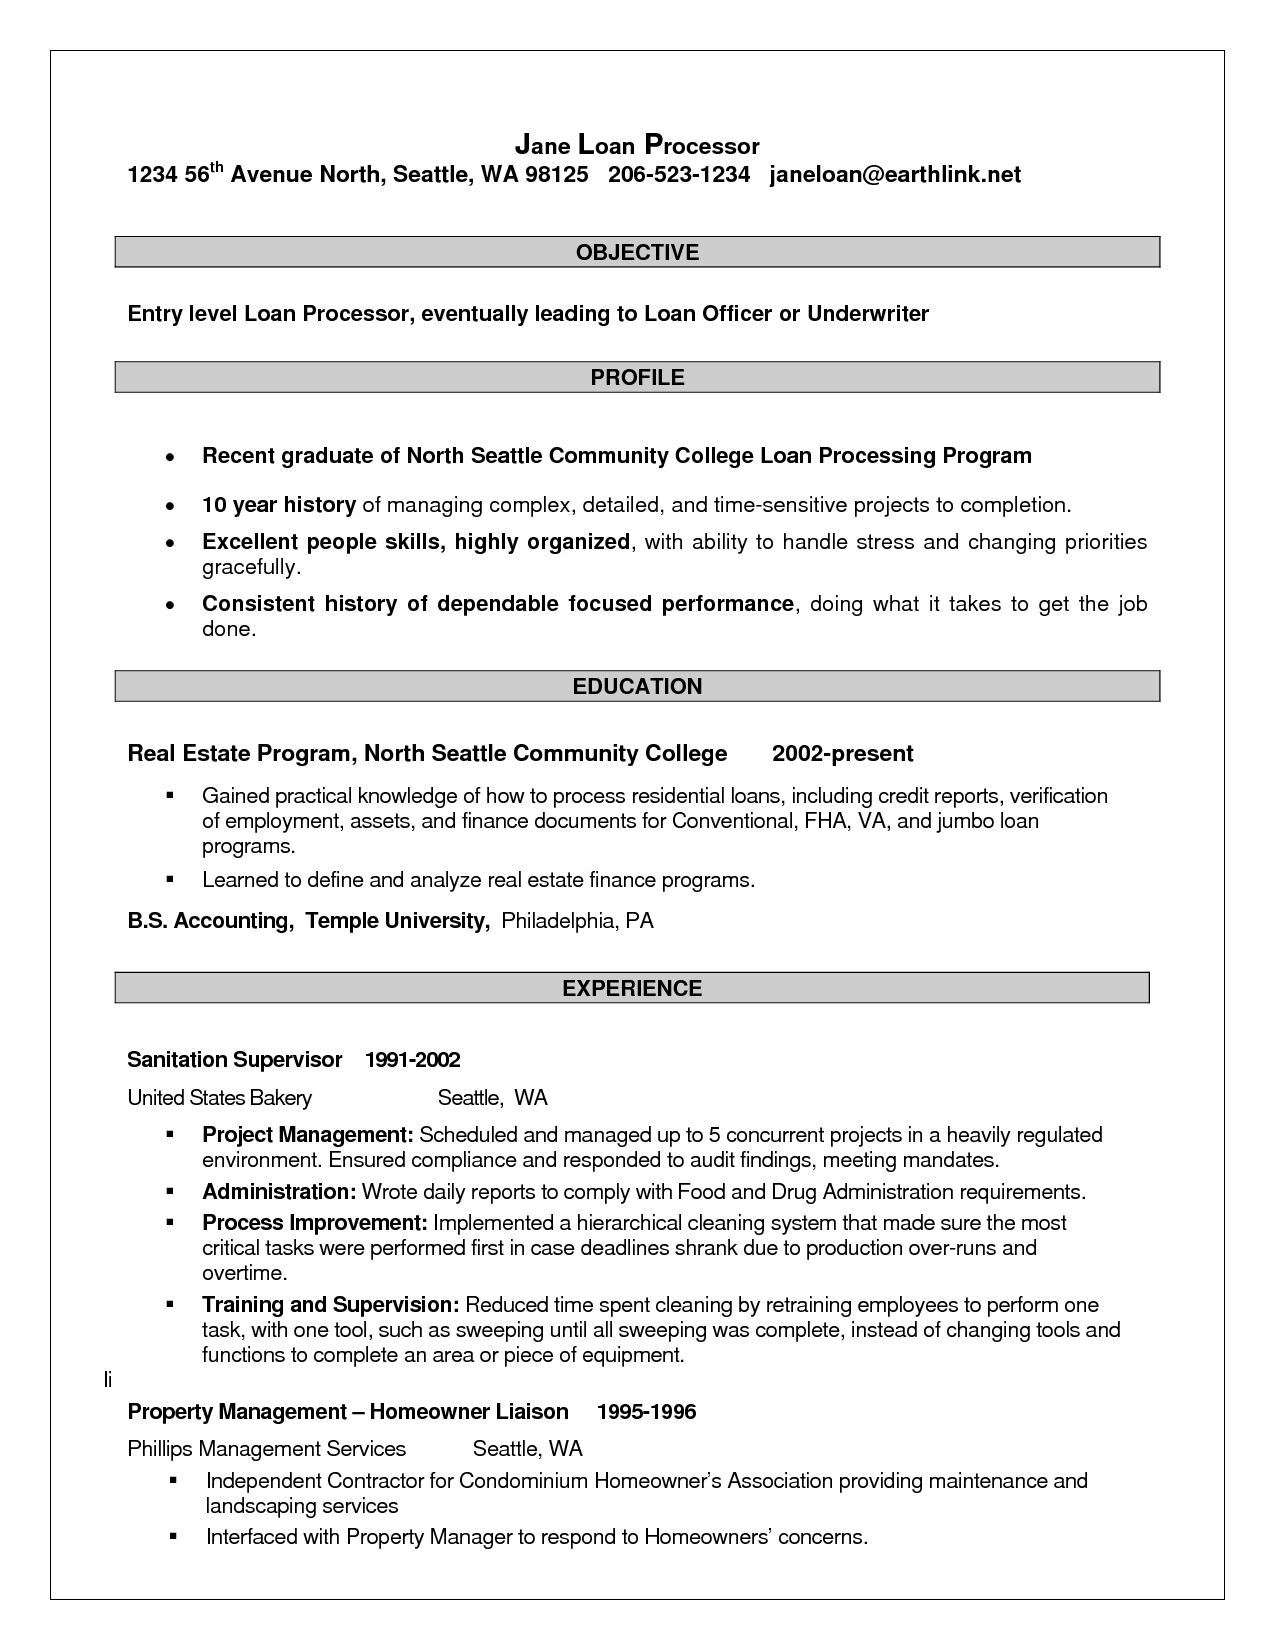 resume for loan processor